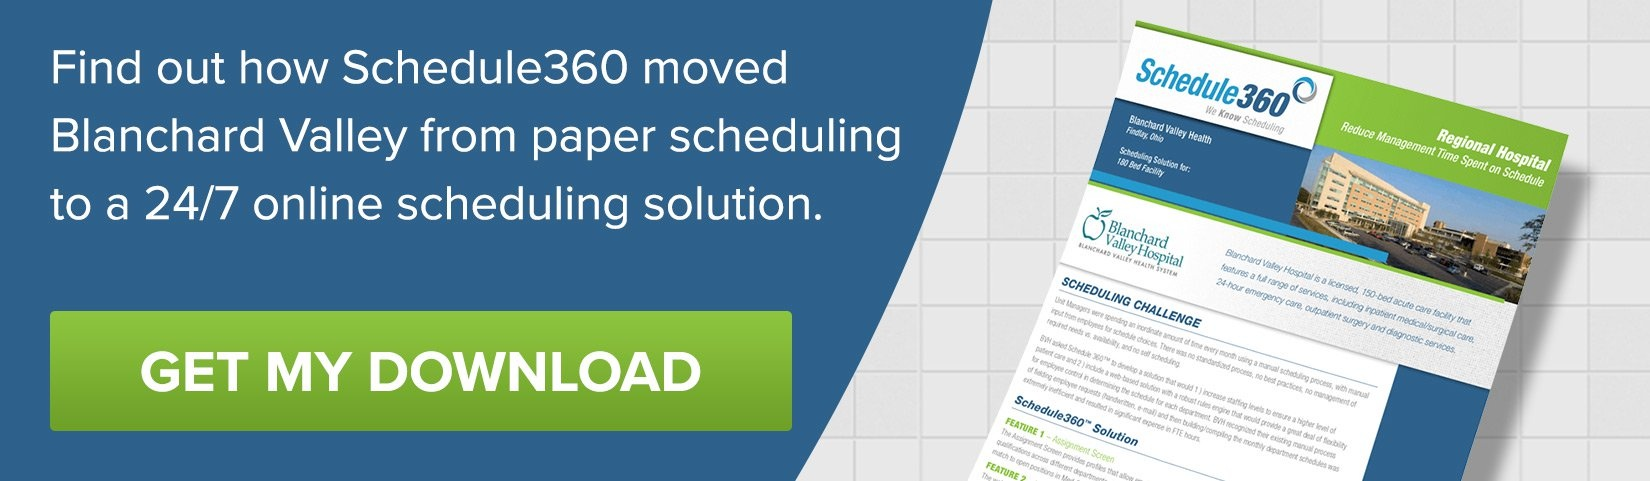 Find out how Schedule360 moved Blanchard Valley from paper scheduling to a 24/7 online scheduling solution.